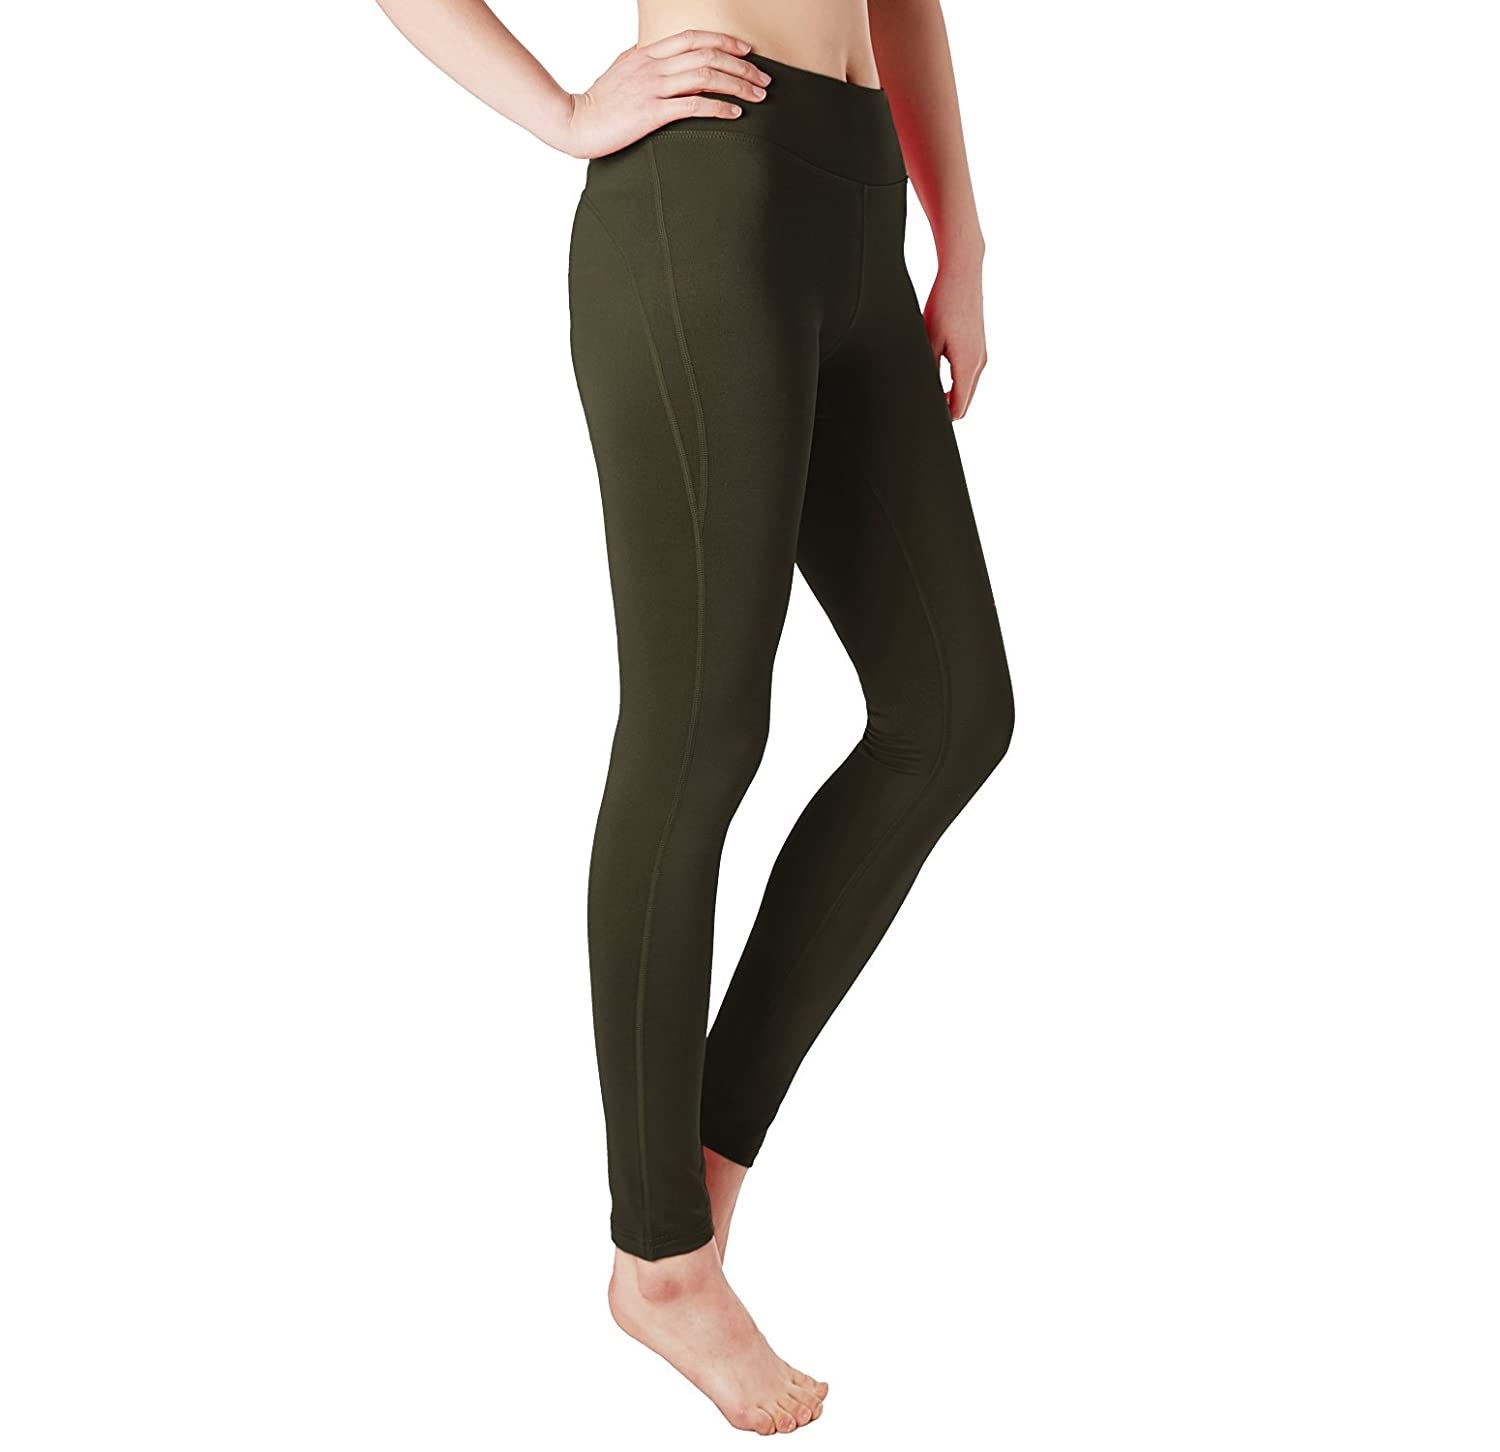 8f0bd4093d Amazon.com: DRSKIN Compression Cool Dry Sports Tights Pants Baselayer Running  Leggings Yoga Womens: Clothing